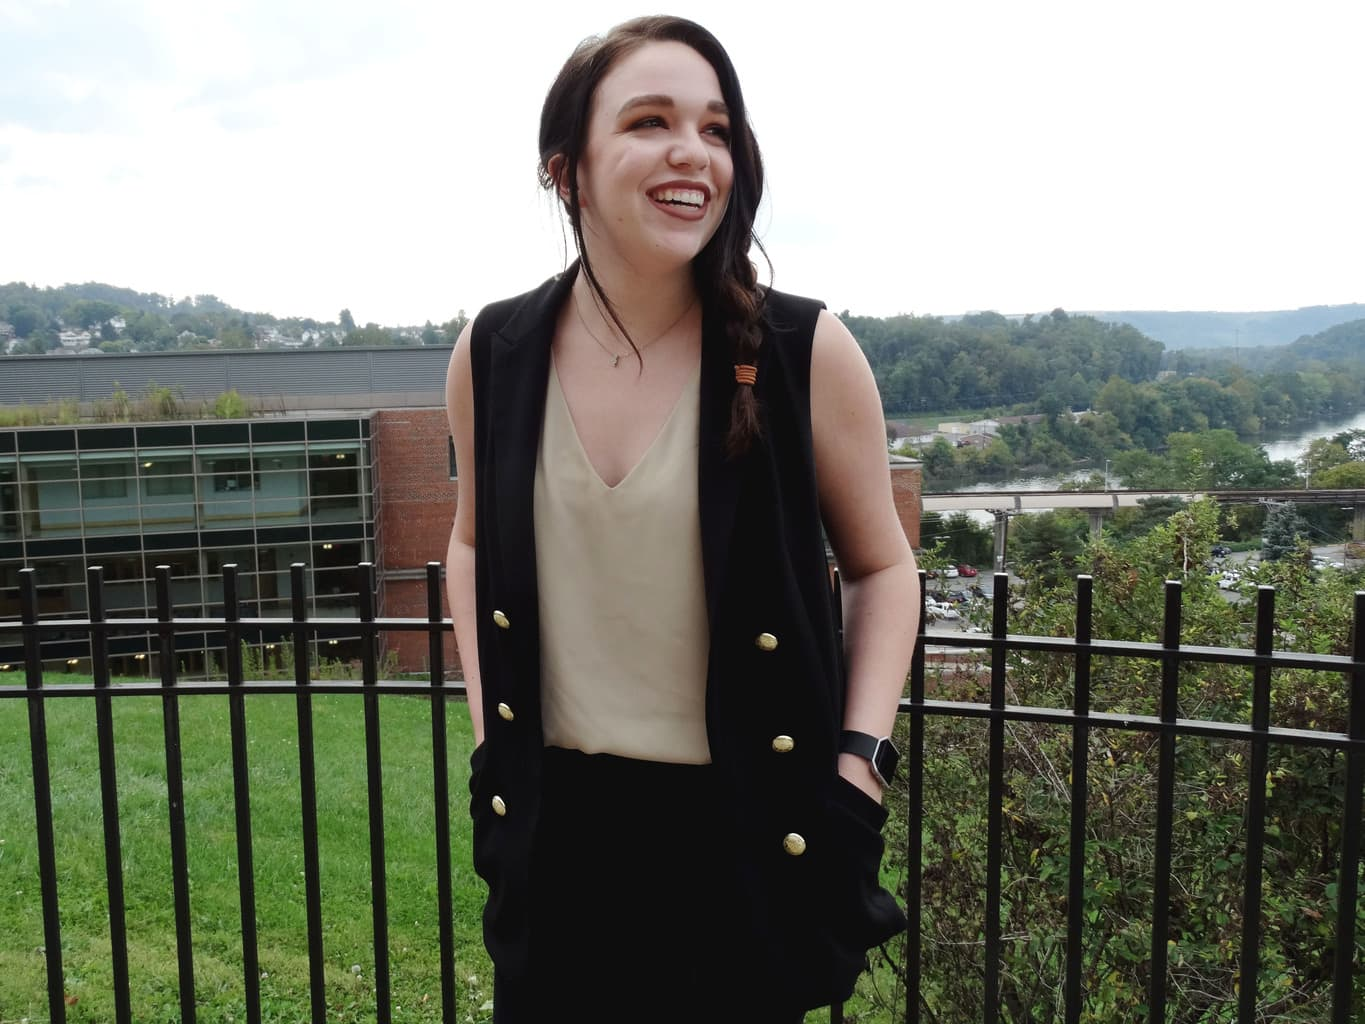 Bree wears a black military-style sleeveless vest with gold buttons and a tan tank top tucked into black trousers.